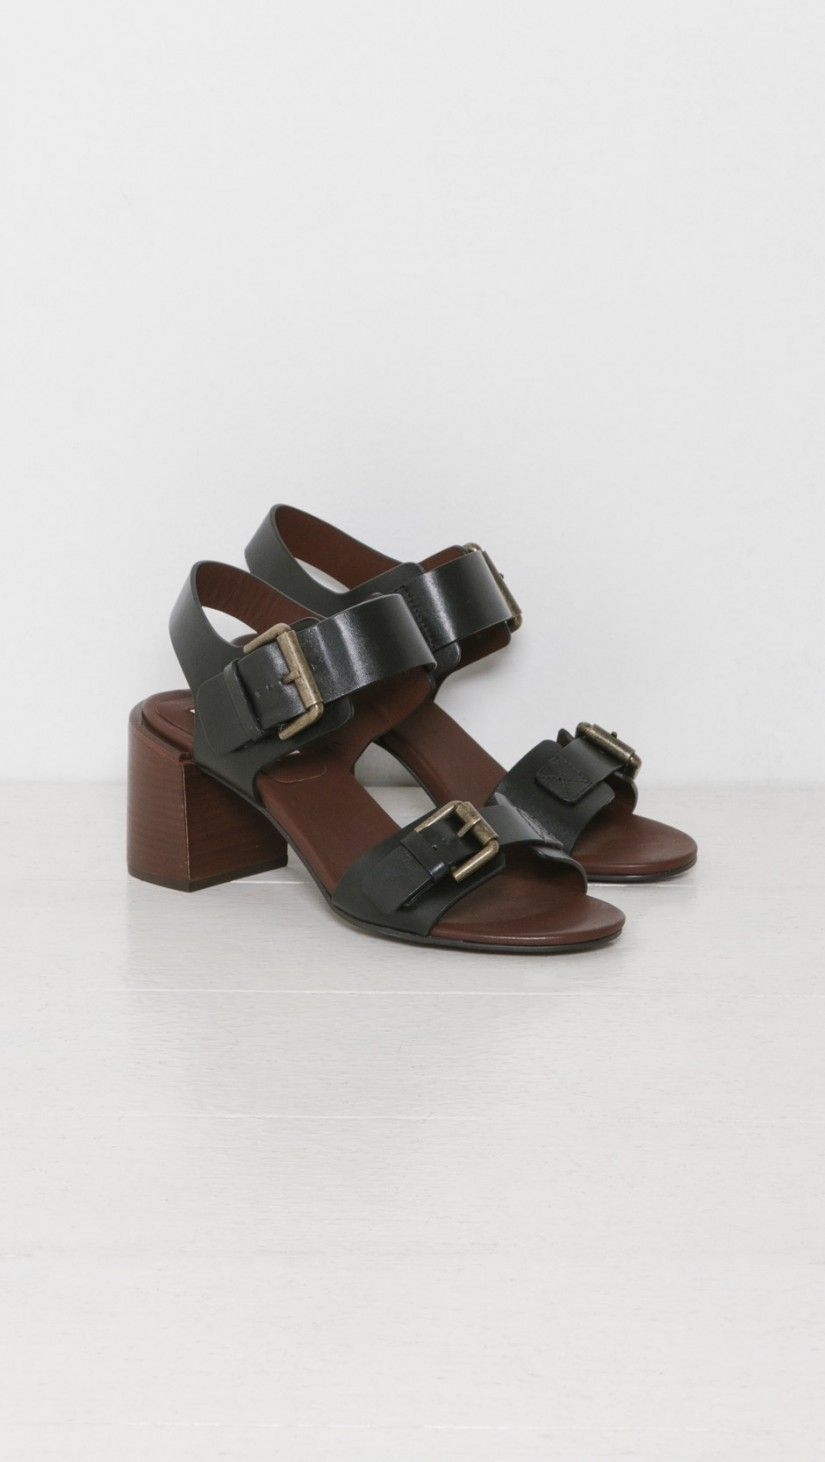 buckle strap sandals - Brown See By Chloé 4xJEL